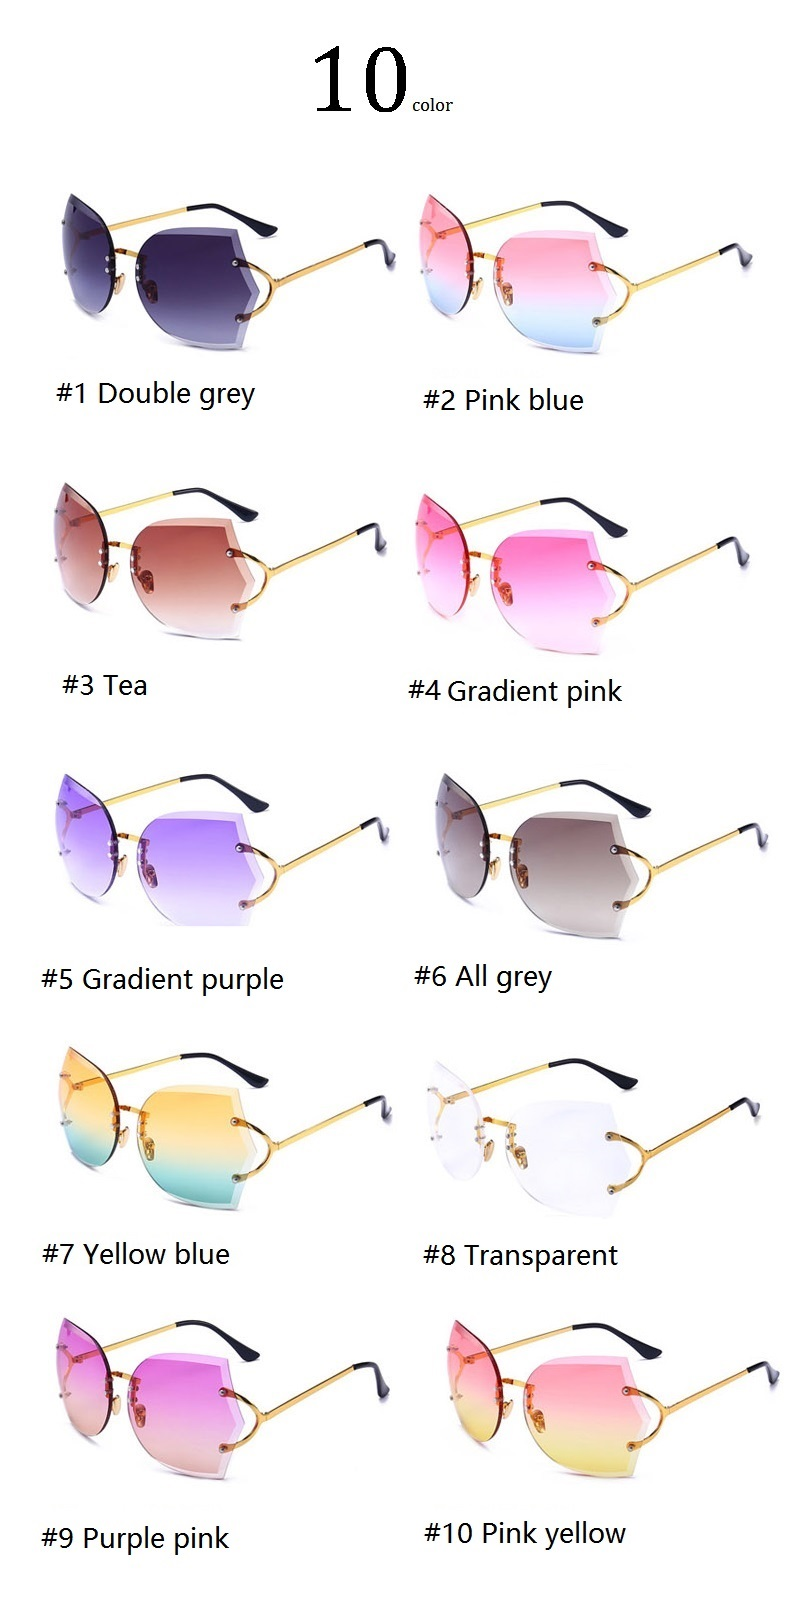 b0bb7a7288 Detail Feedback Questions about Cat Eye Eyeglasses Women Sunglasses ...